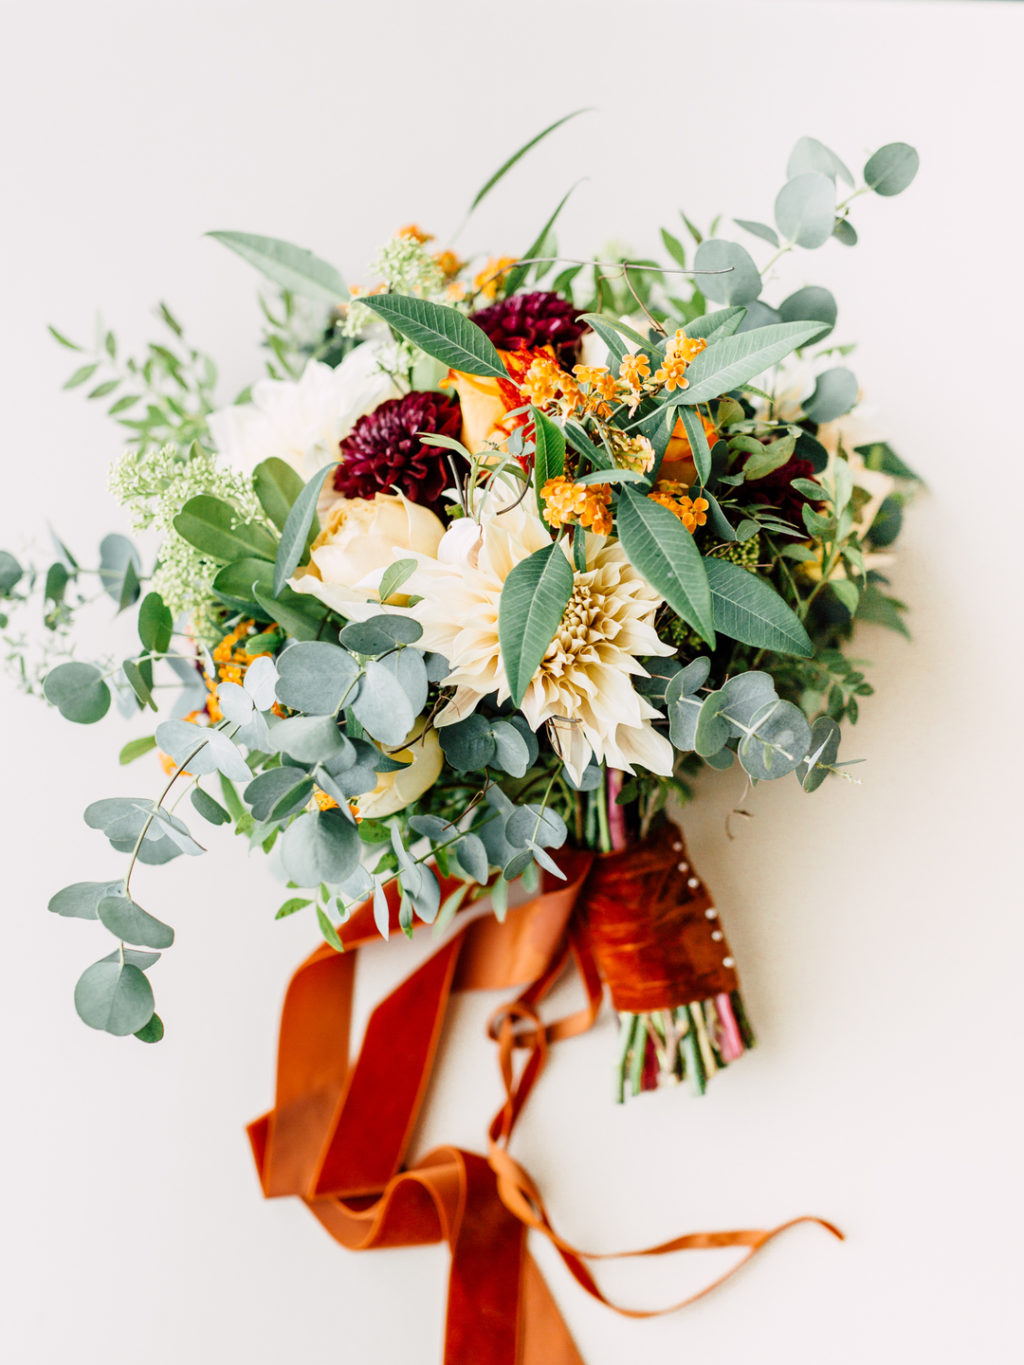 This lovely wedding bouquet was done with burgundy, orange and creamy blooms and a bright orange ribbon